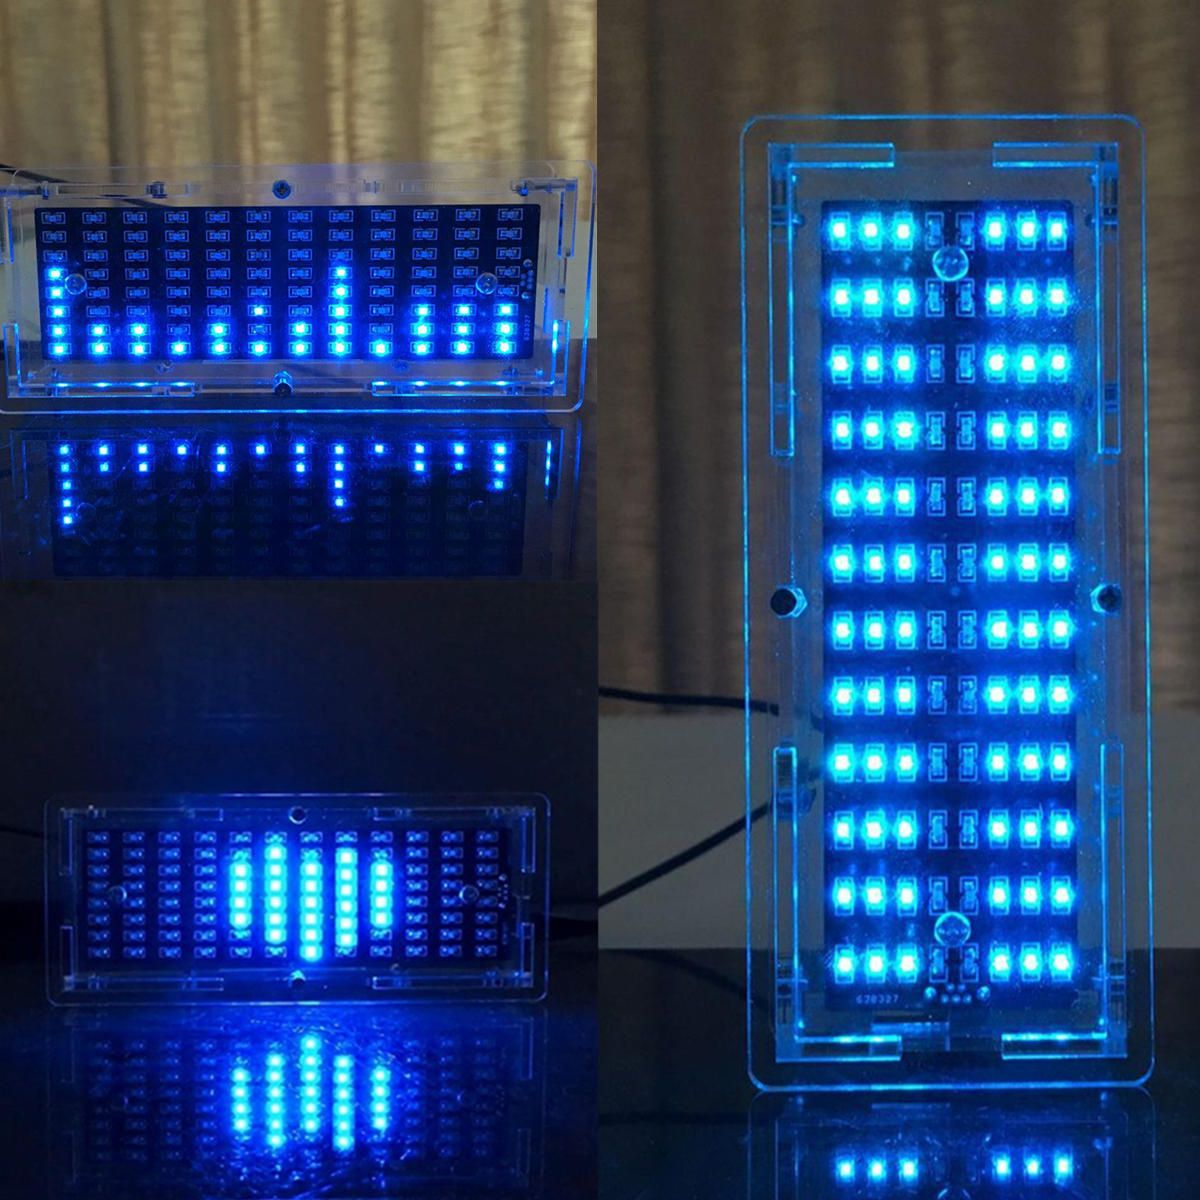 US$10 17] DIY Audio Level Meter Blue LED Display Music